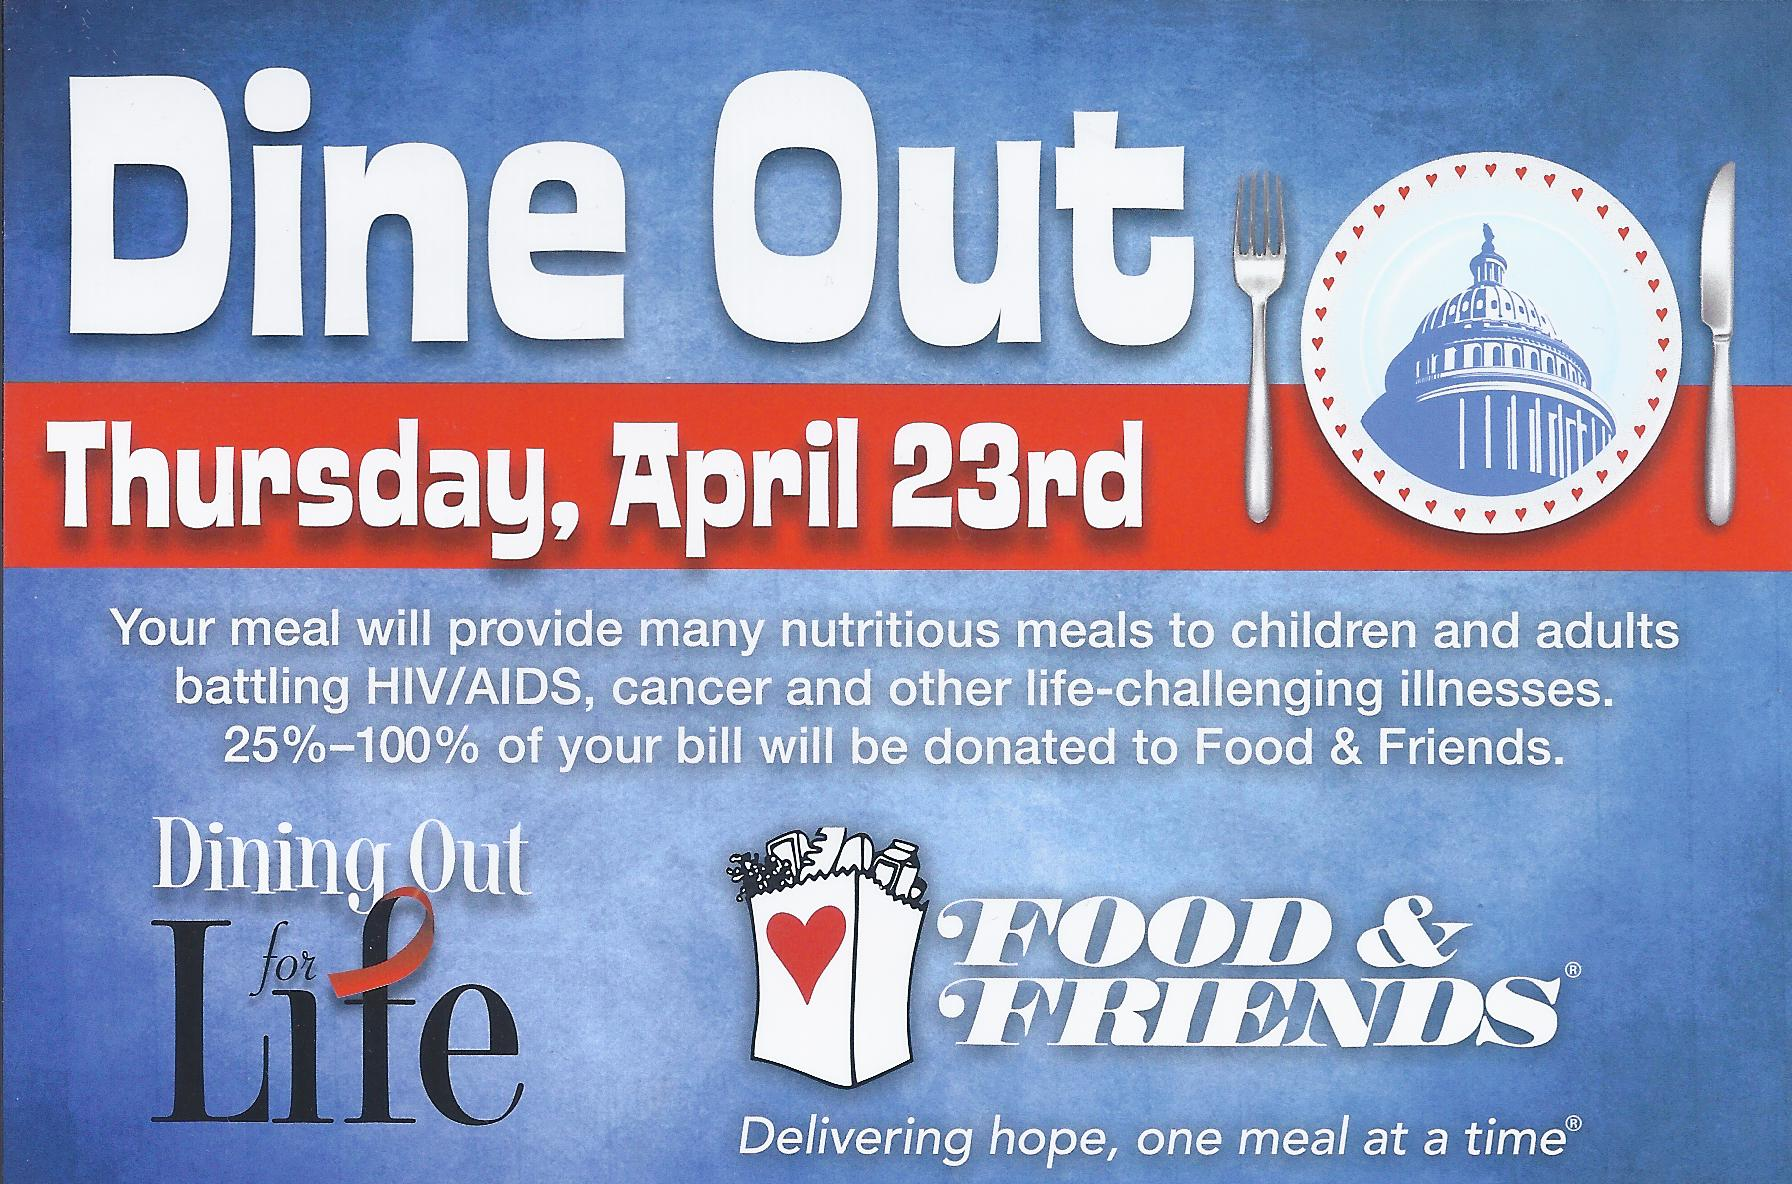 Dine out at participating restaurants on Apr. 23 and they'll donate 25-100 percent of your check to Food & Friends. (Grahpic: Food & Friends)